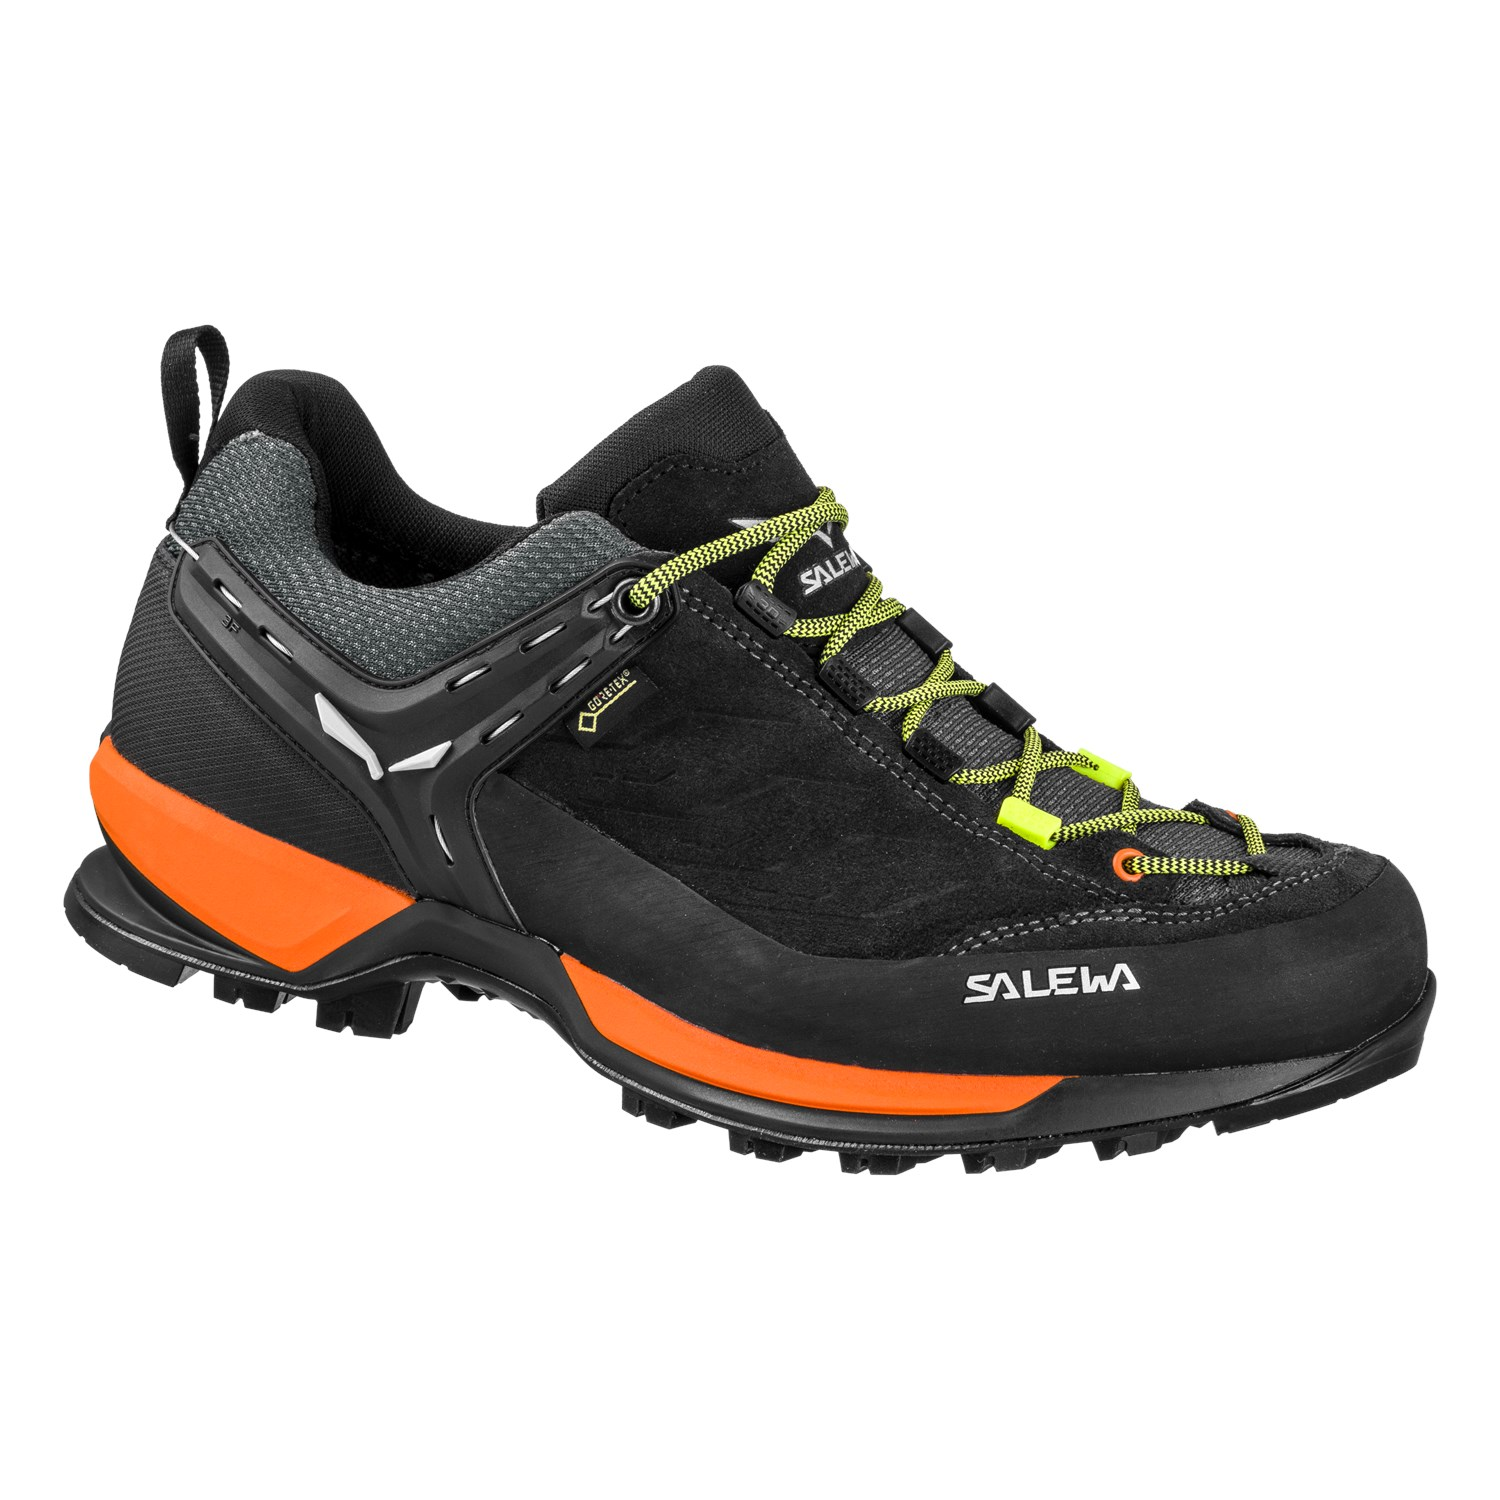 Mens shoes Mountain Trainer GORE-TEX colore Black Orange - Salewa ... 0ed6b0586